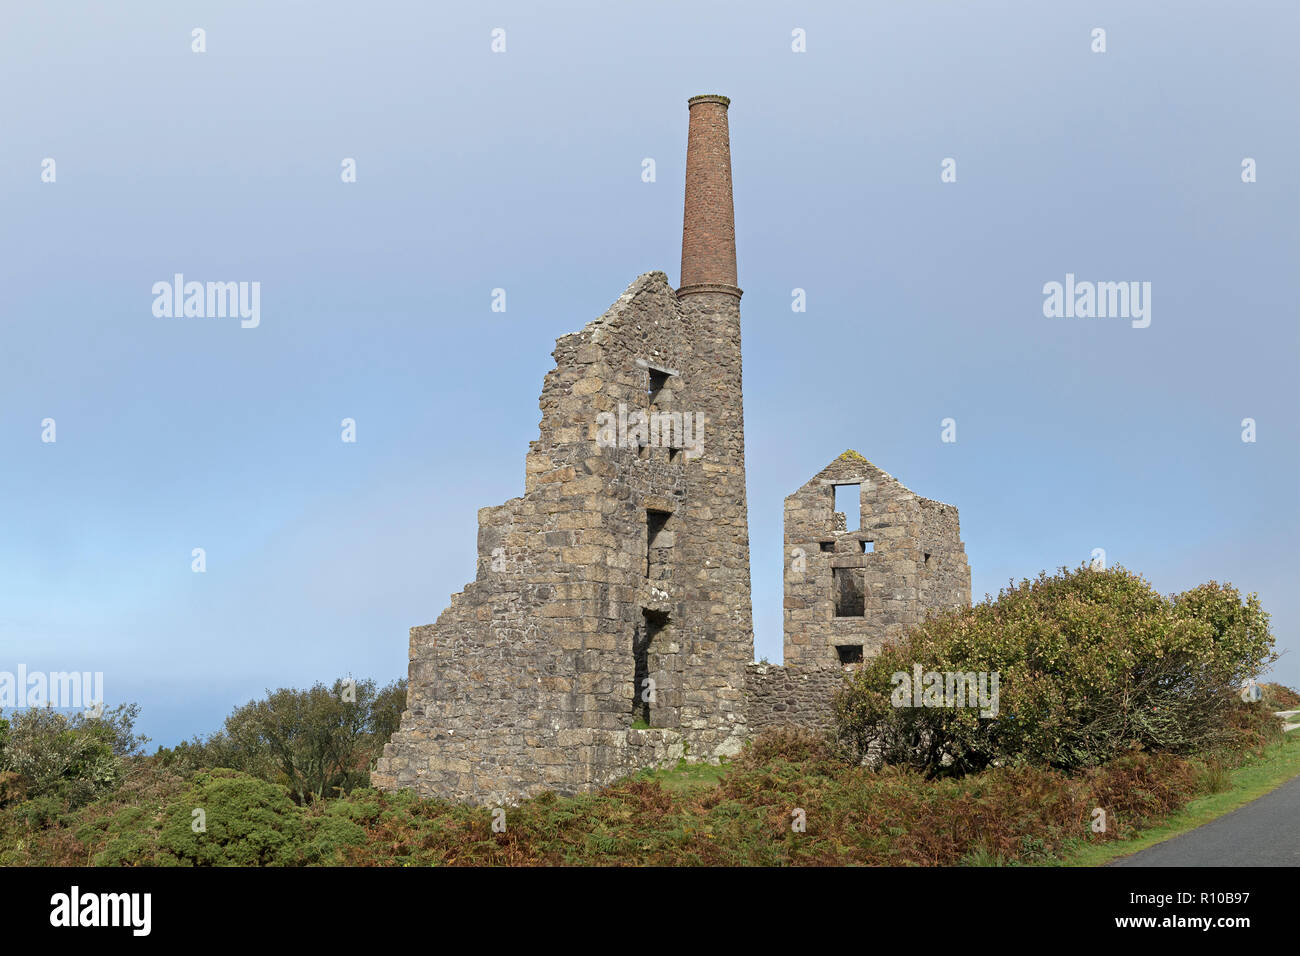 Carn Galver tin mine, Rosemergy, Cornwall, England, Great Britain - Stock Image